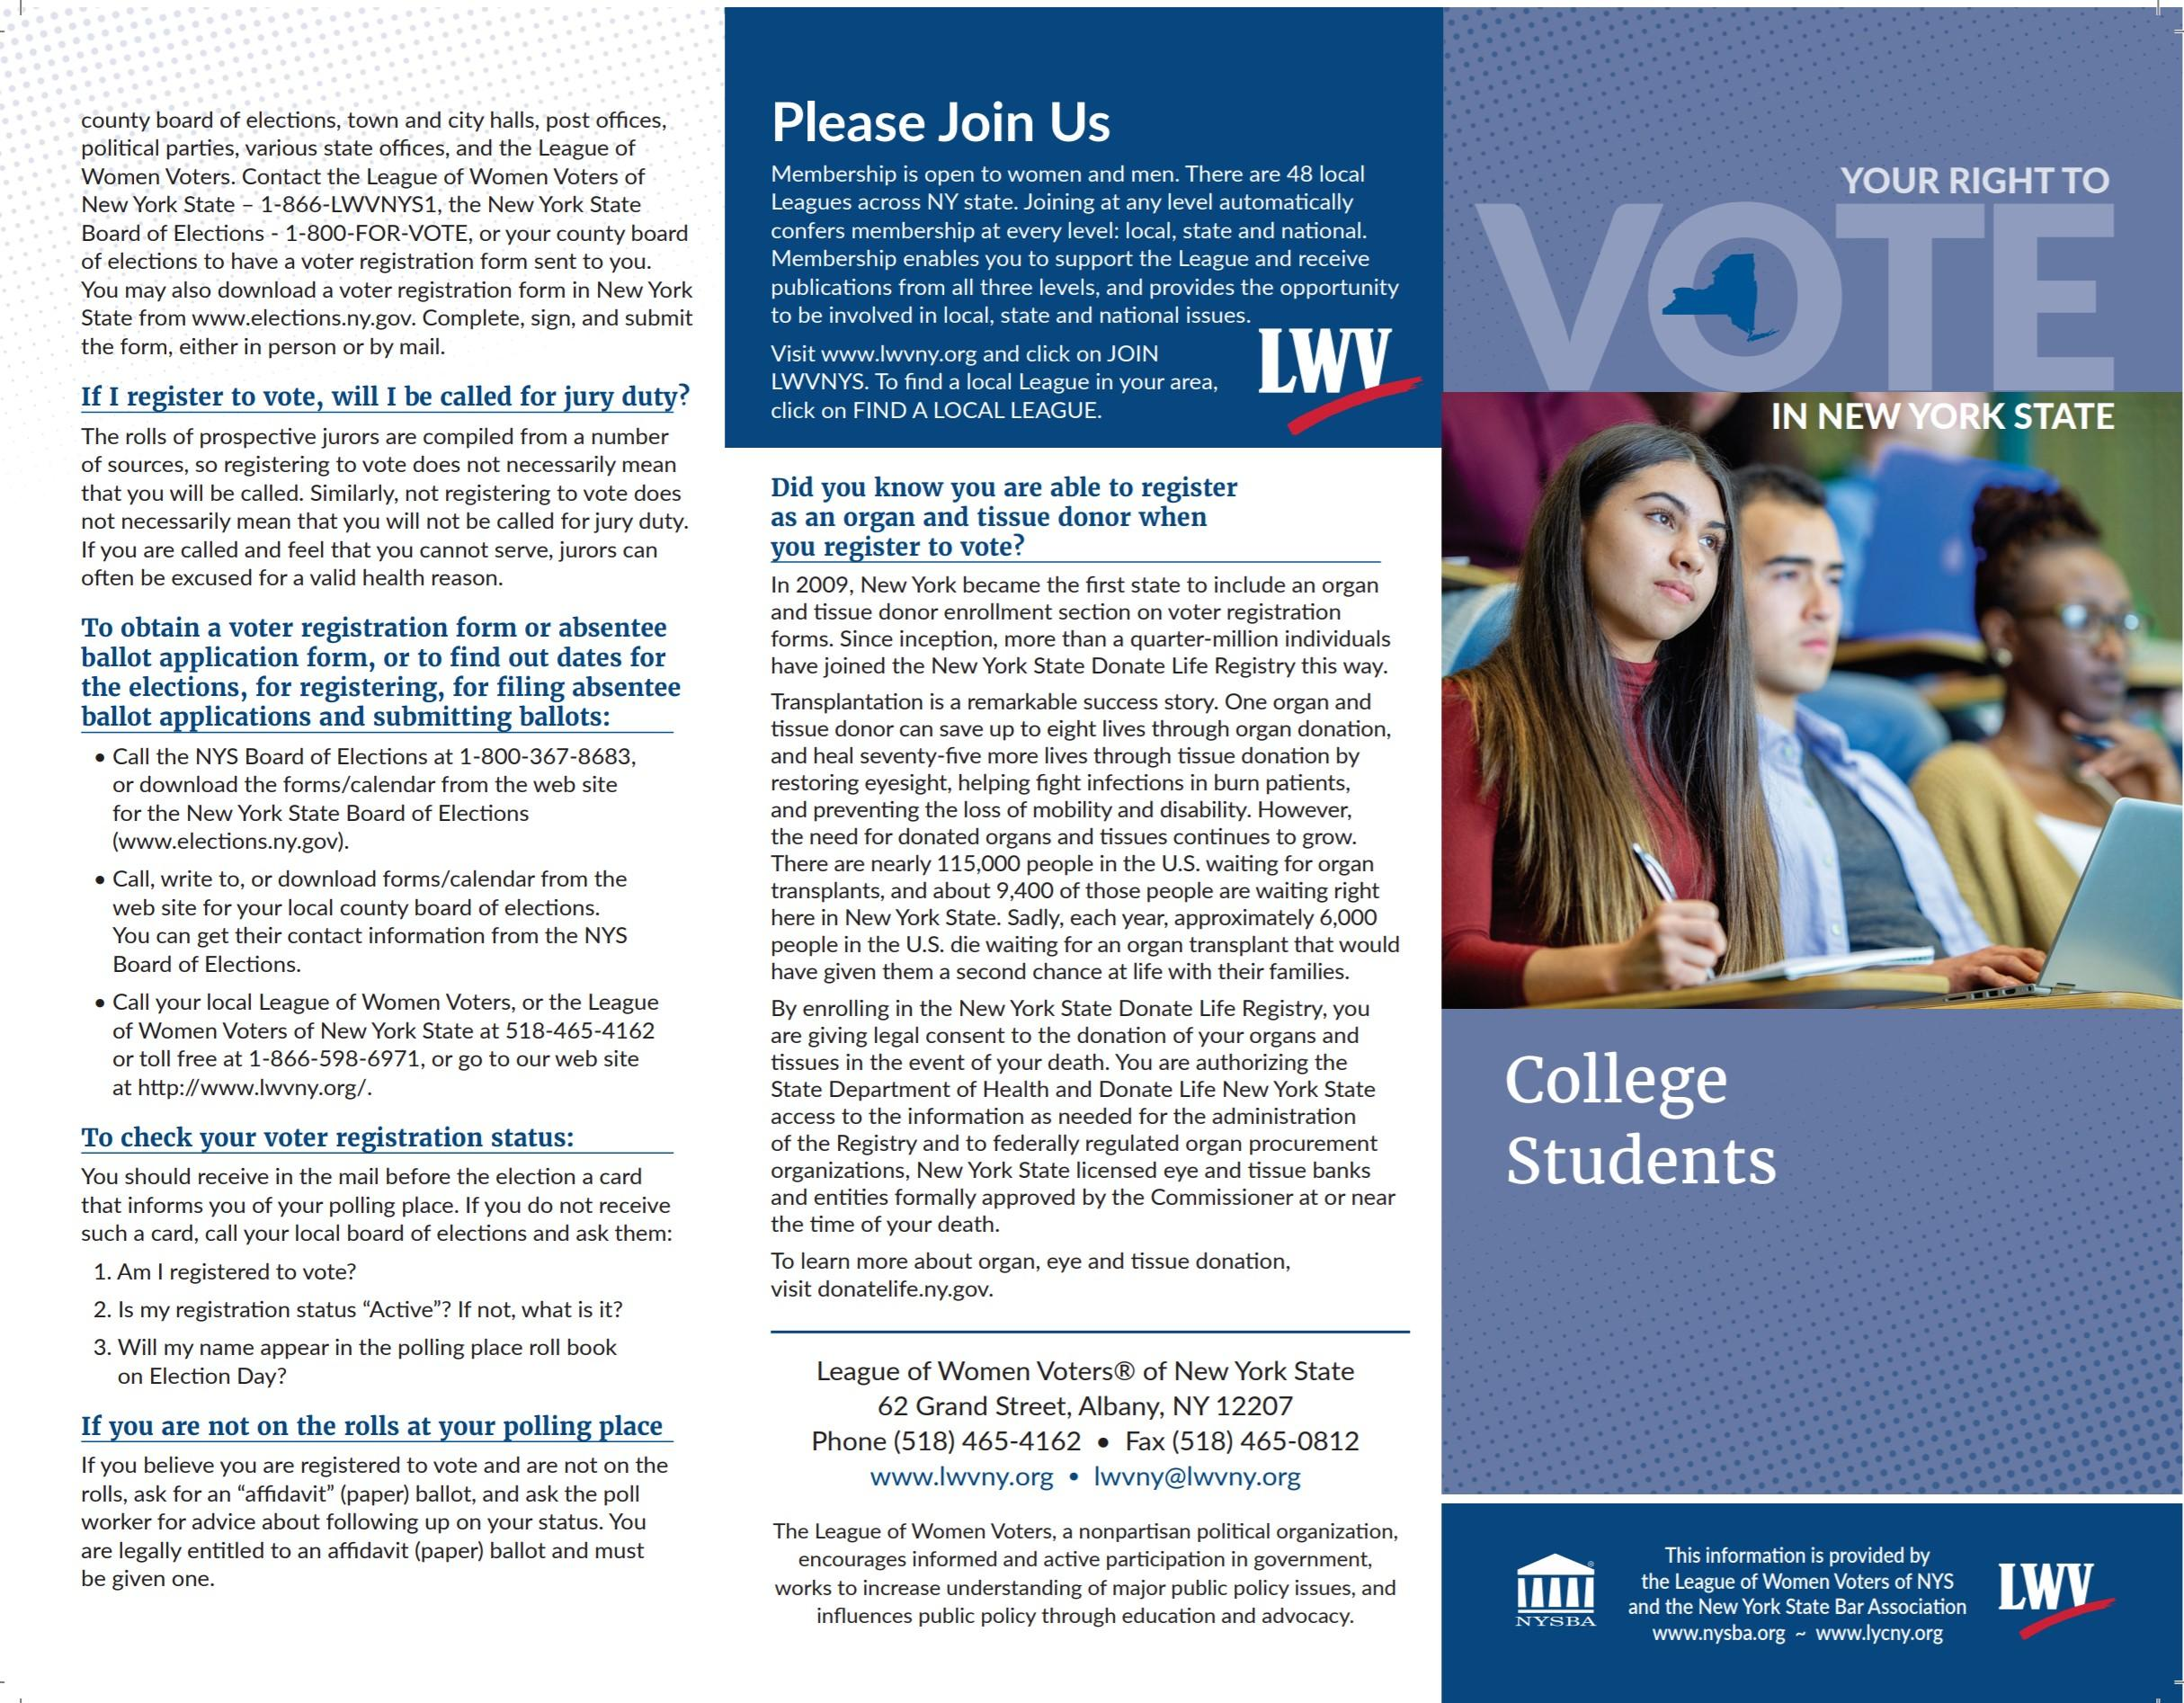 Student Info - page 1